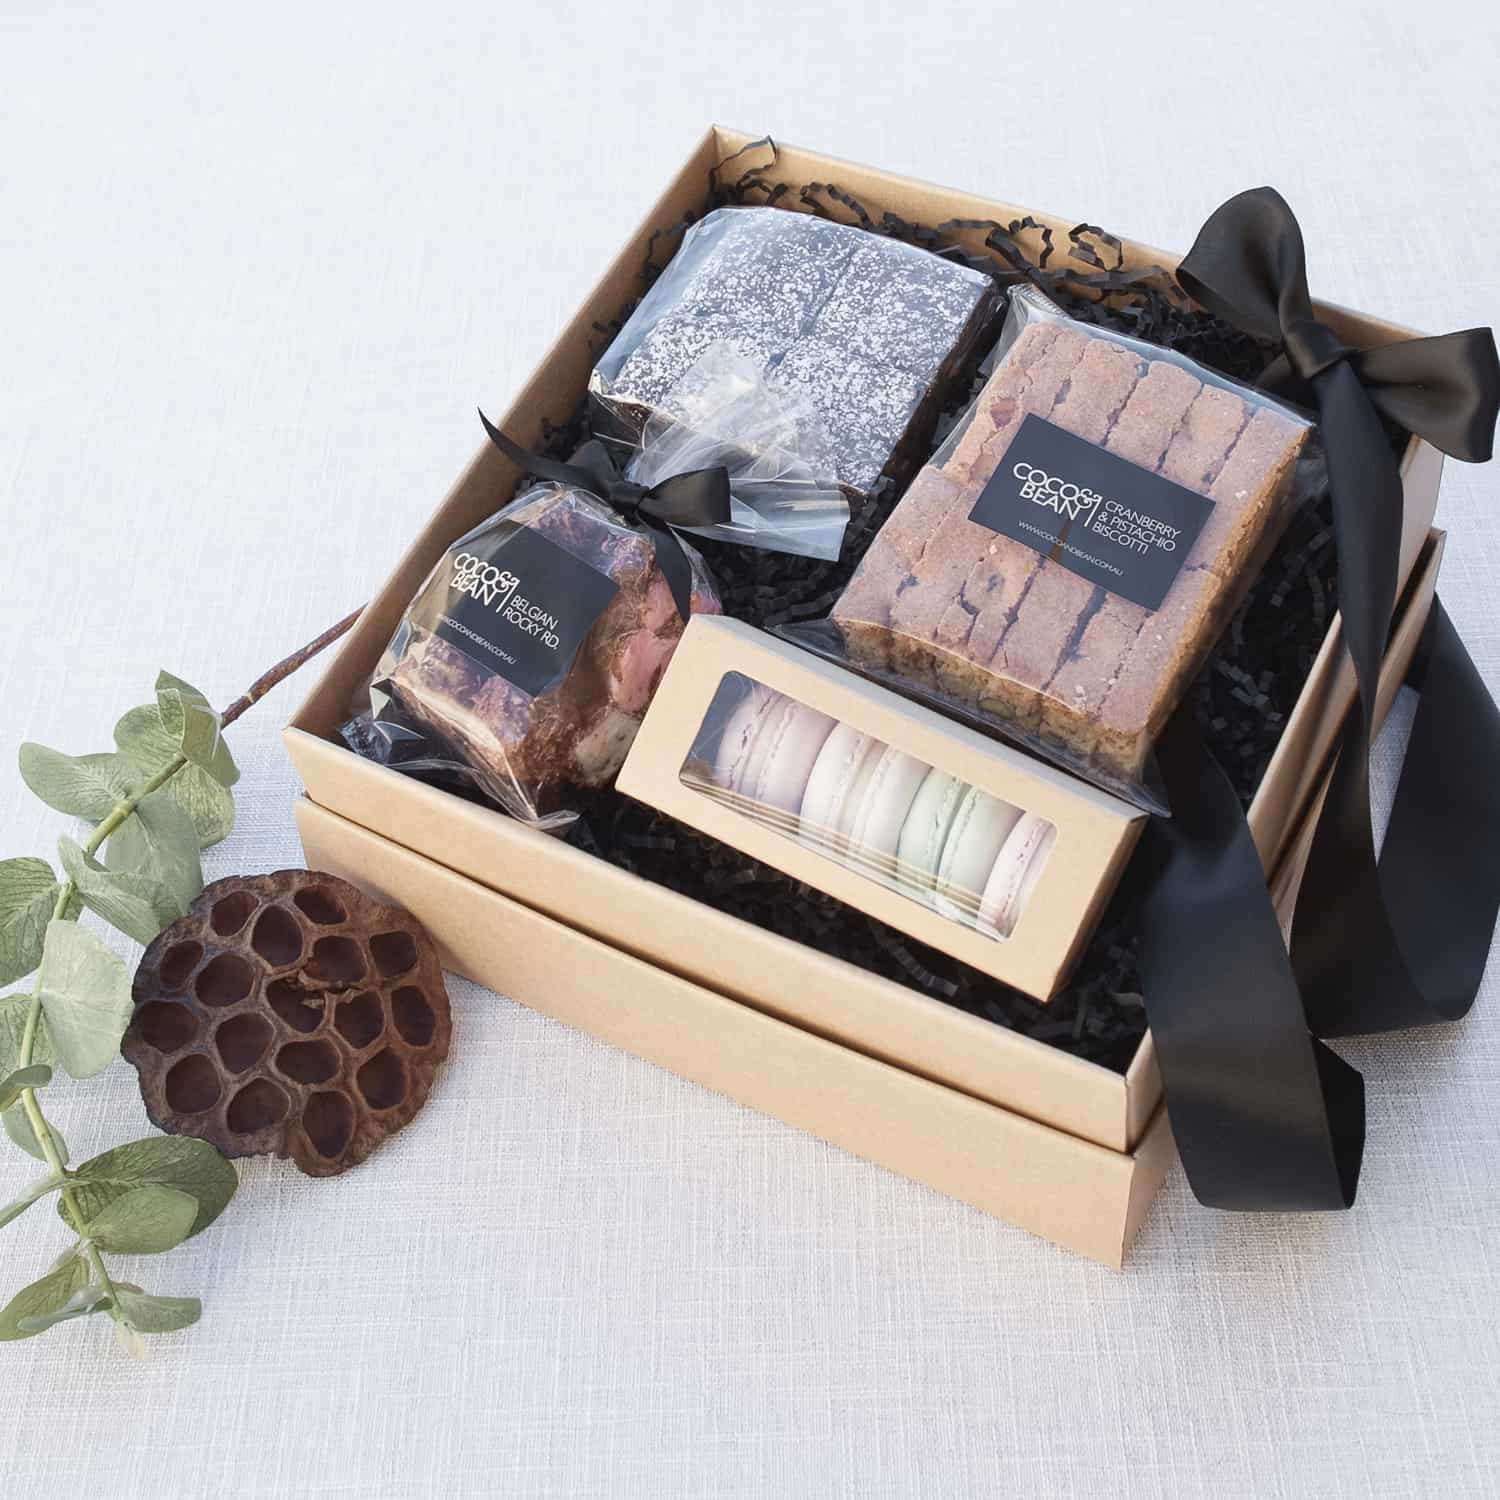 belgian chocolate brownies biscotti macarons rocky road gift hamper